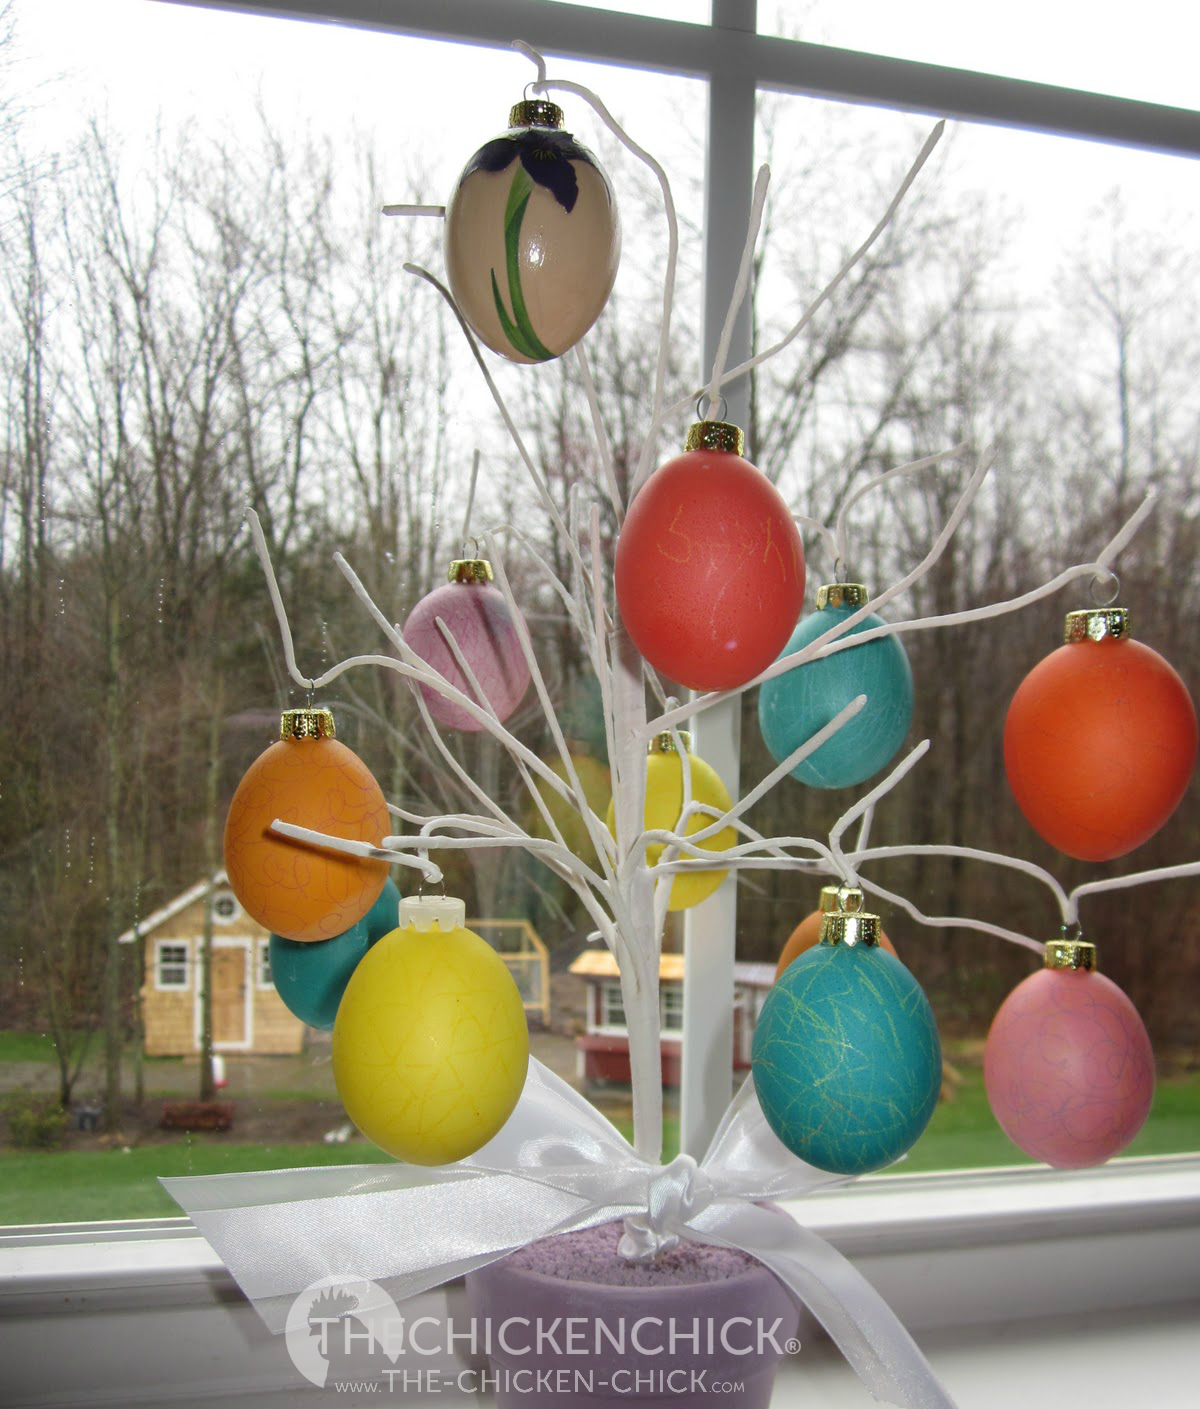 Chicken christmas ornaments - Easter Egg Tree Made With Blown Colored Eggs